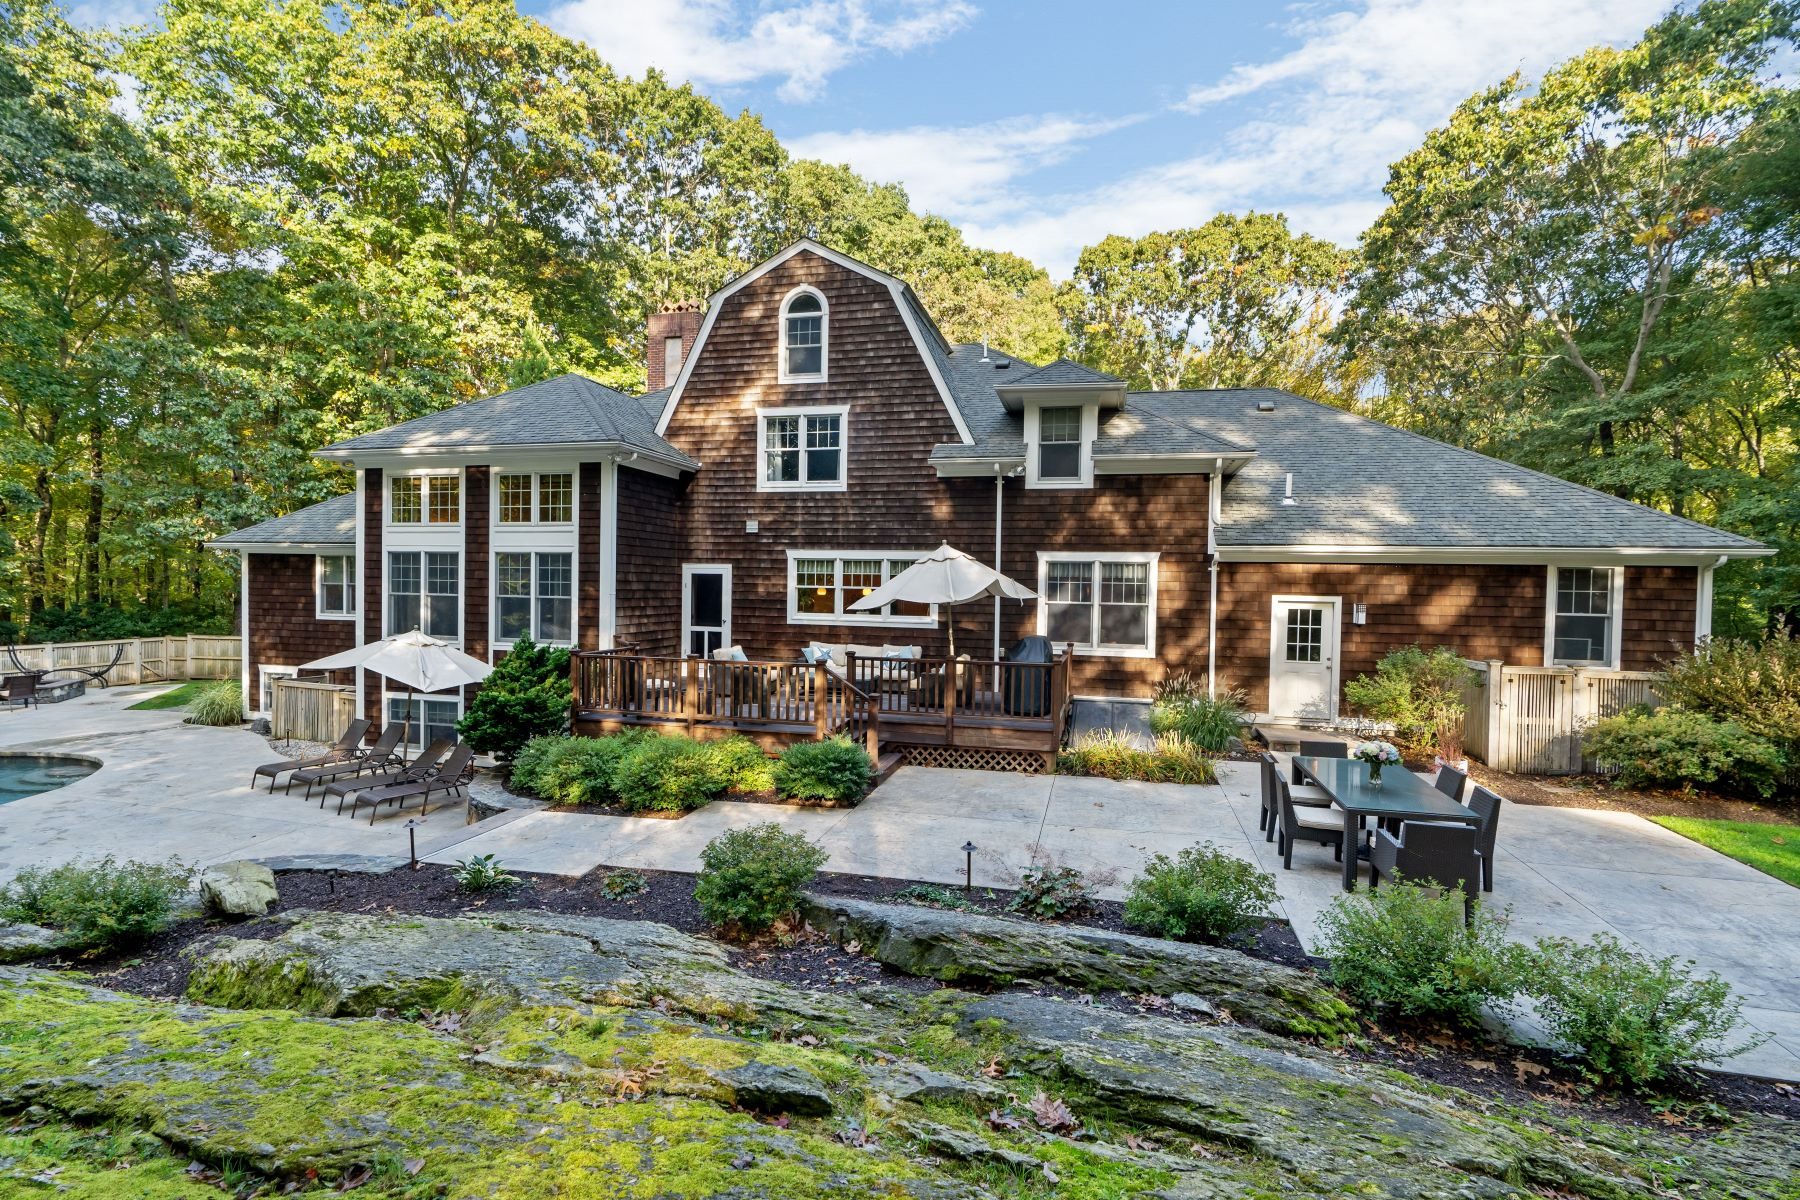 Single Family Homes for Sale at 259 Forge Road, North Kingstown, RI 259 Forge Road North Kingstown, Rhode Island 02852 United States